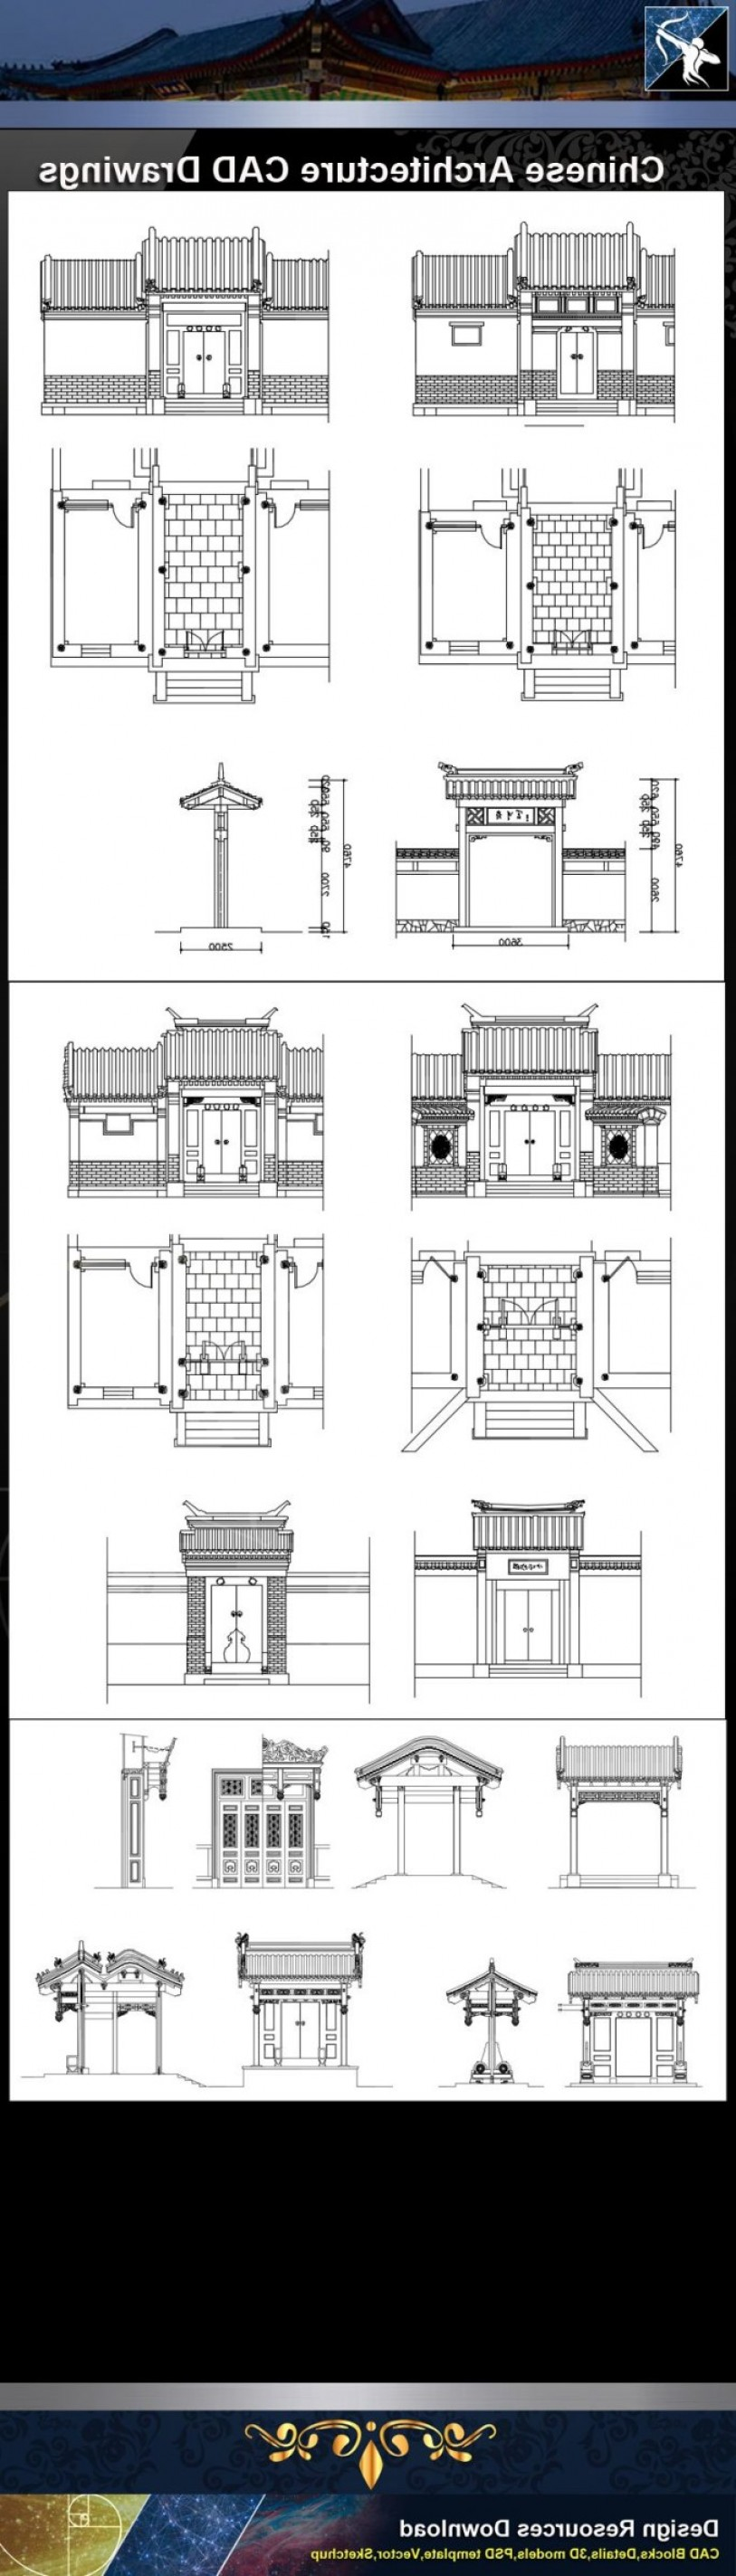 Falcon 50 Vector 2D CAD Drawings: Eechinese Architecture Cad Drawingsechinese Gatedoor Design Drawingscad Detailselevation